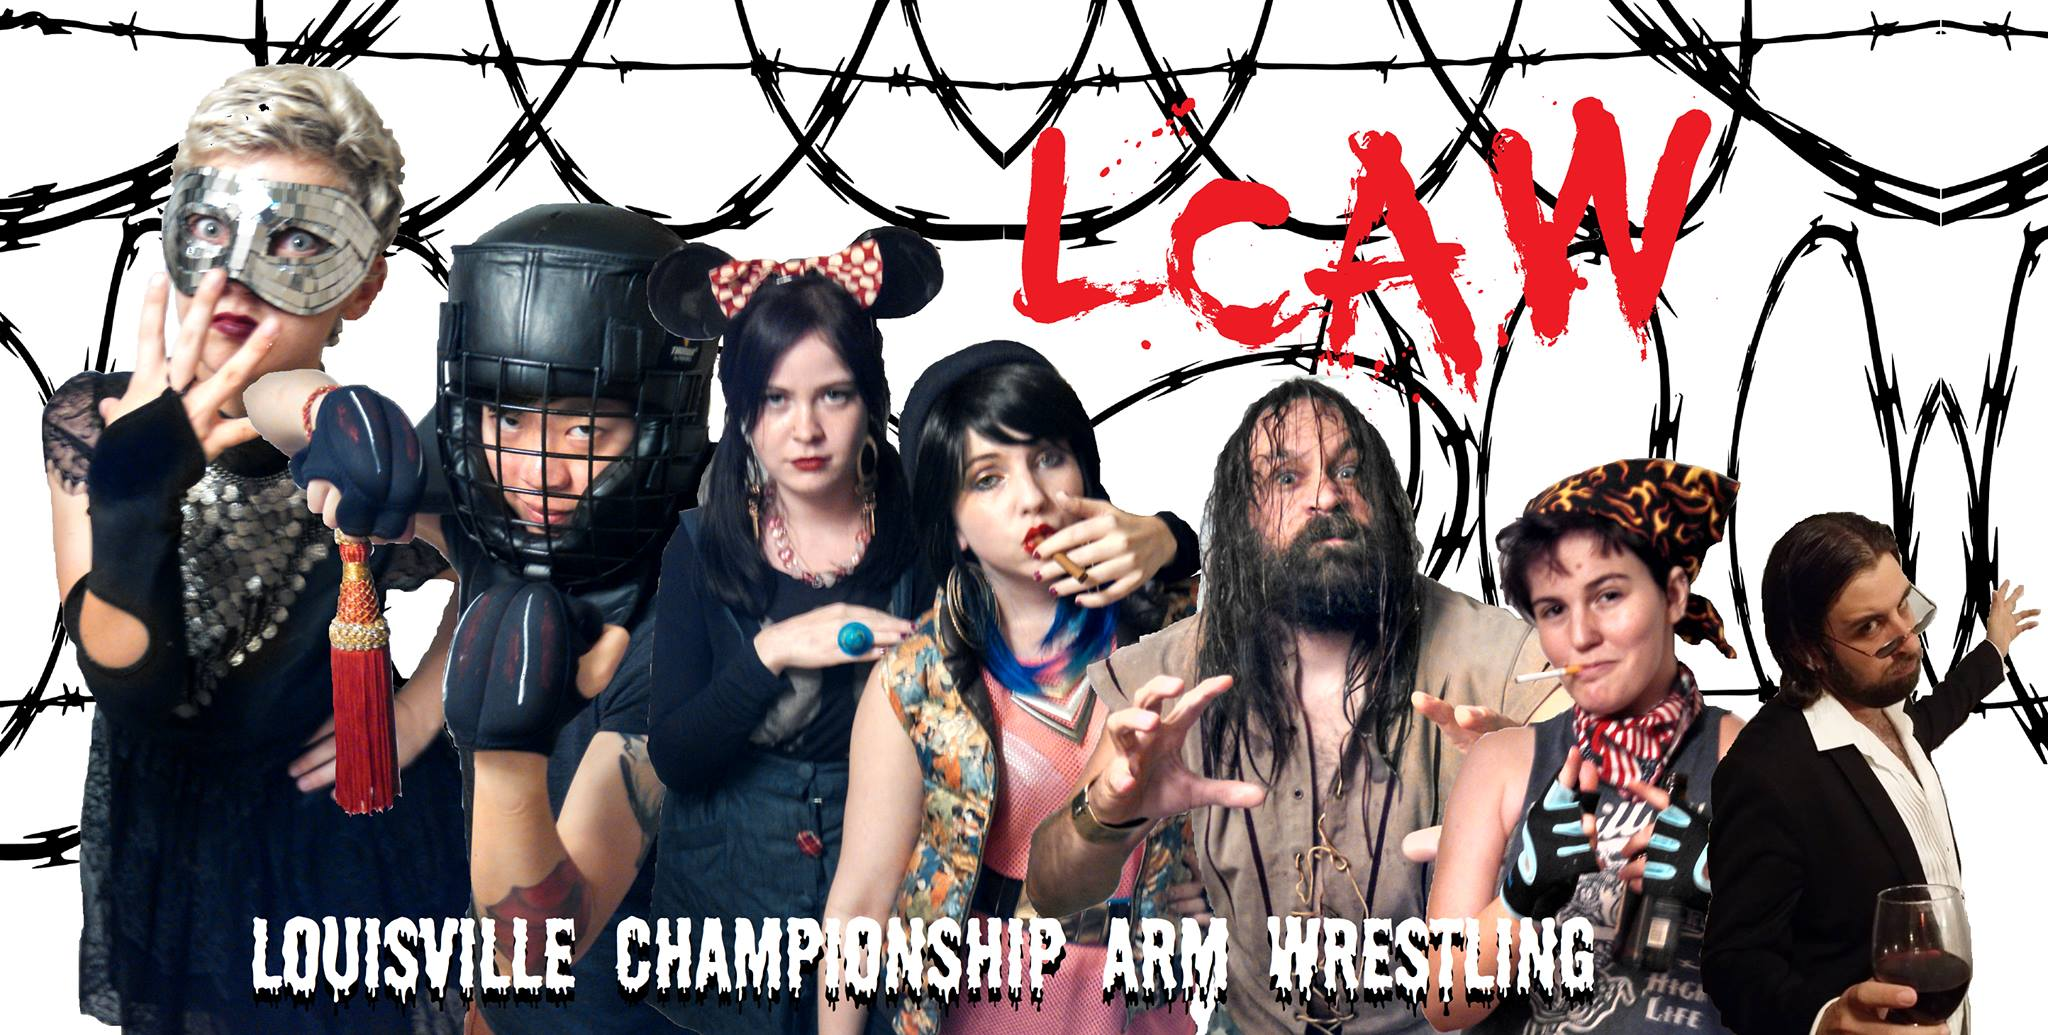 Is Louisville Ready For The Extreme Action of LCAW?